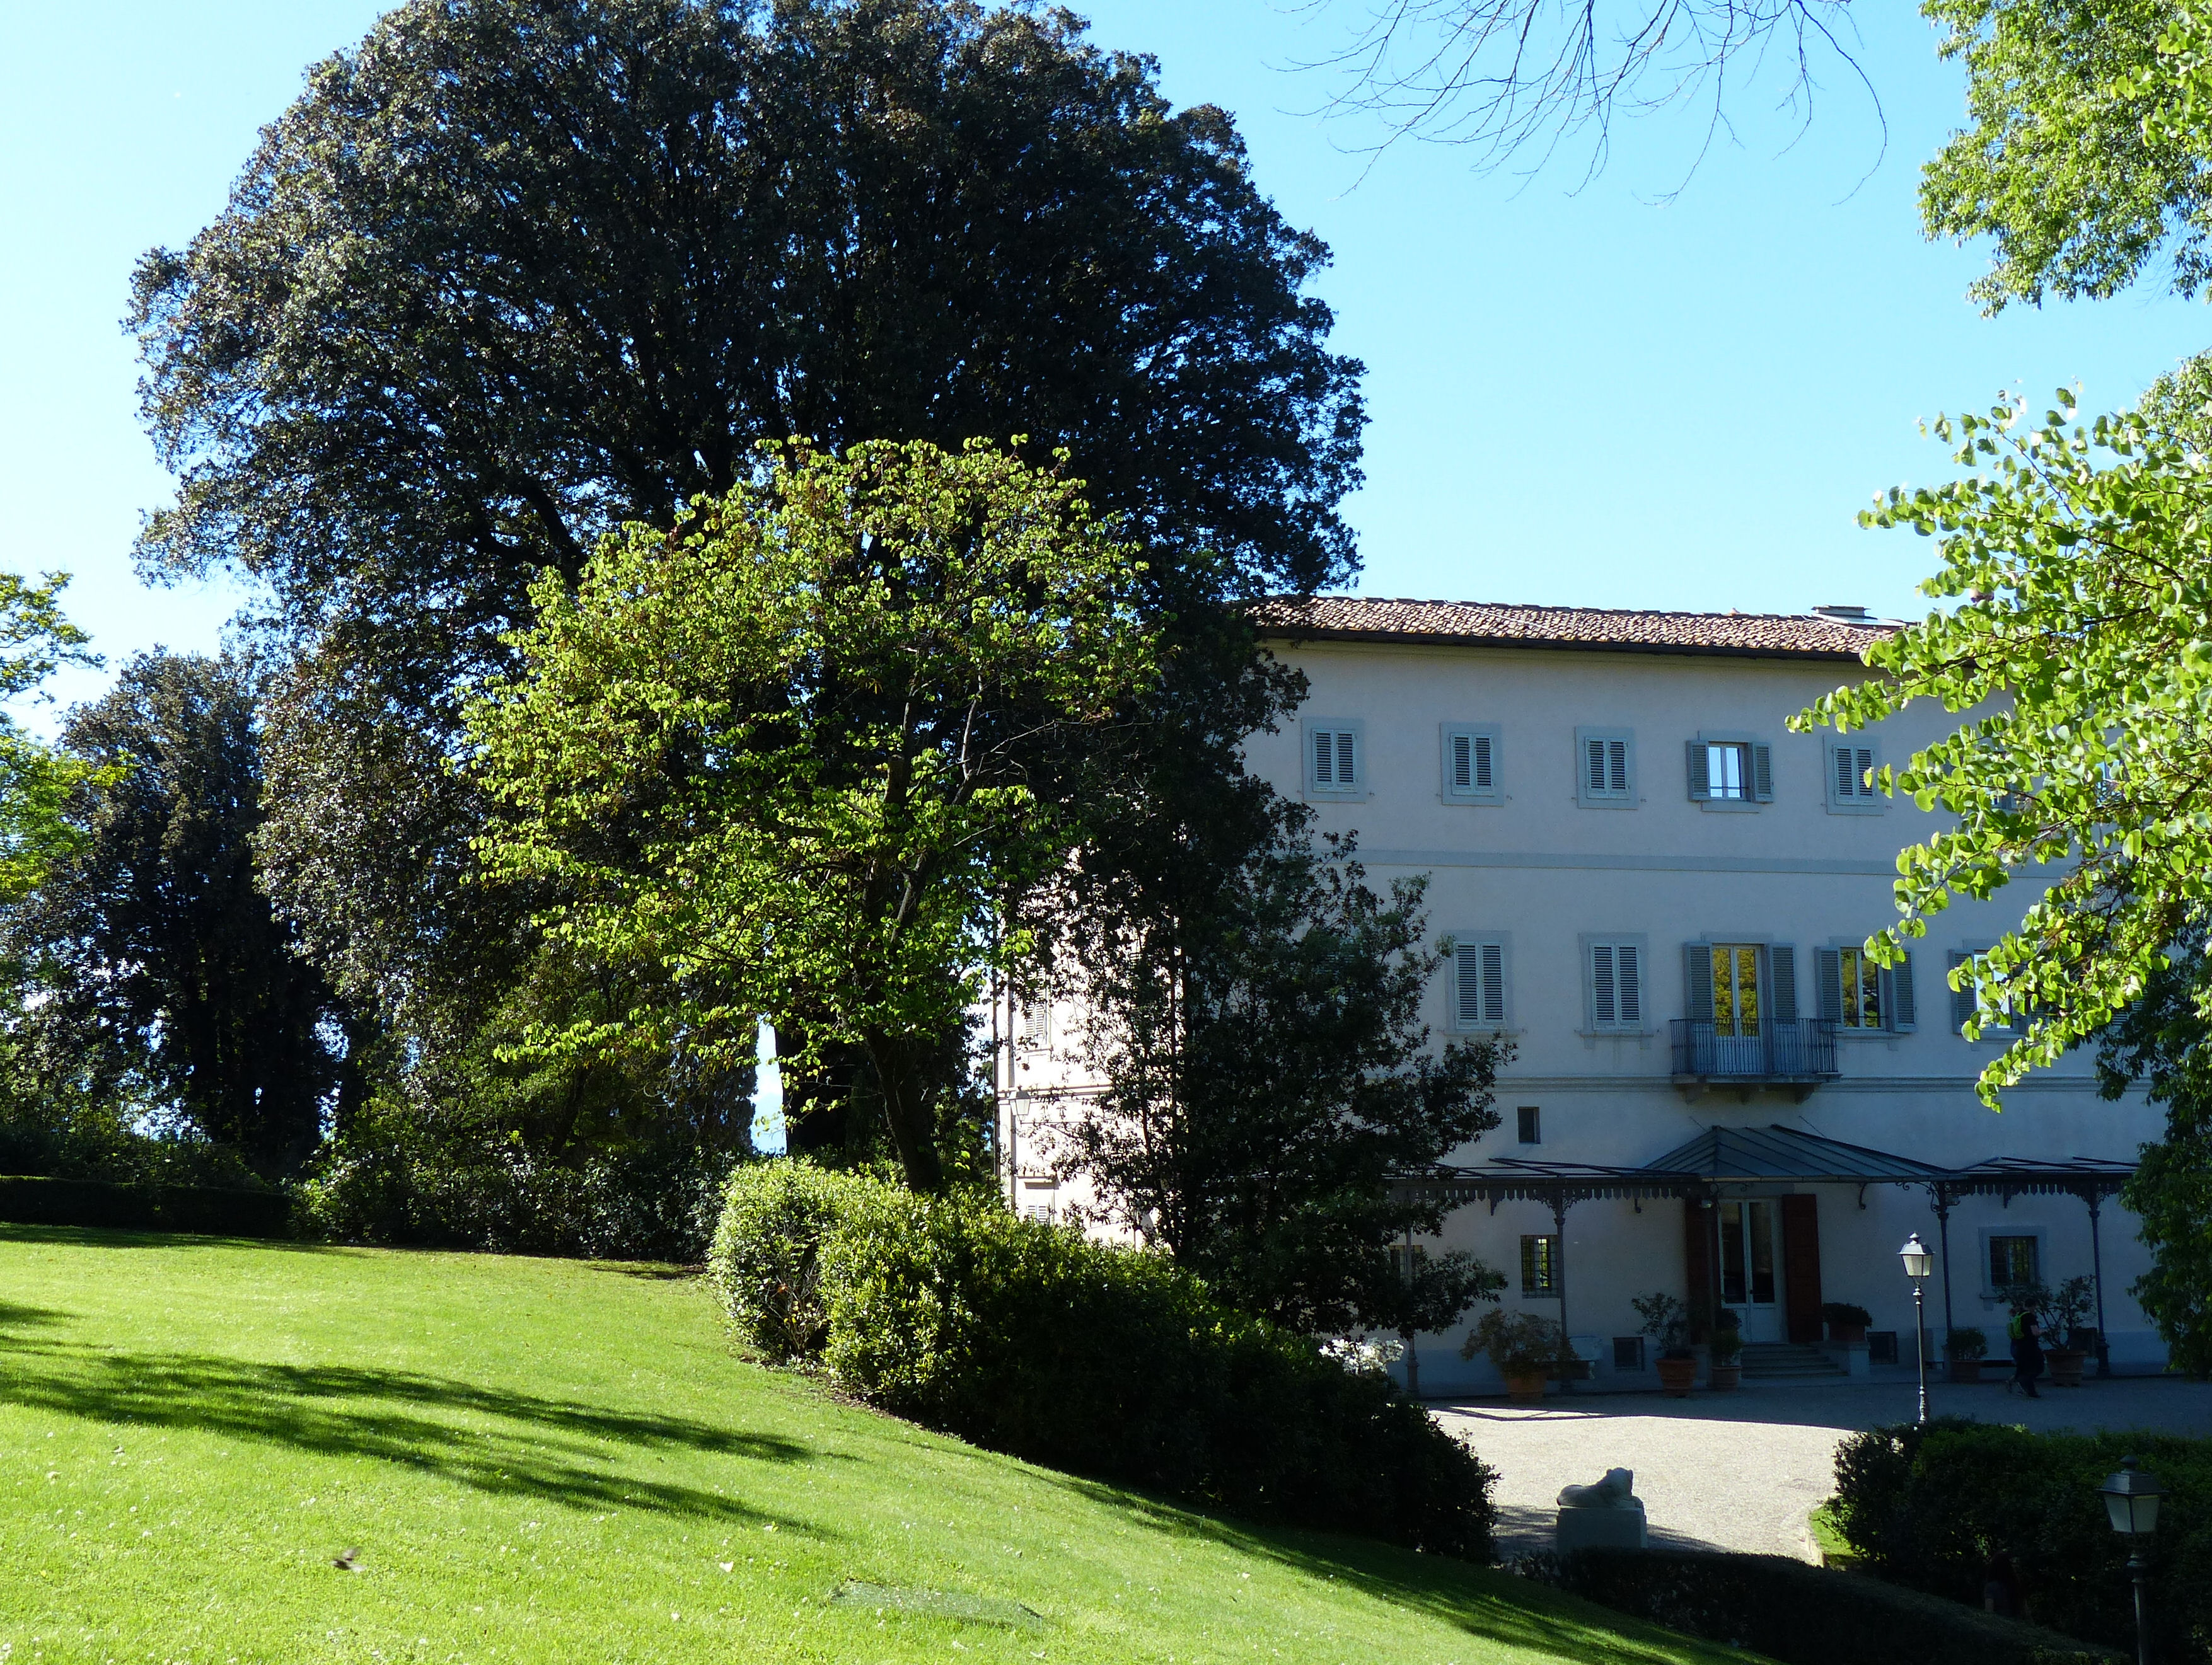 © Dipartimento di Scienze della Vita, Università di Trieste<br>by Andrea Moro<br>Comune di Firenze, Giardino Bardini, FI, Toscana, Italia, 06/05/2017<br>Distributed under CC-BY-SA 4.0 license.